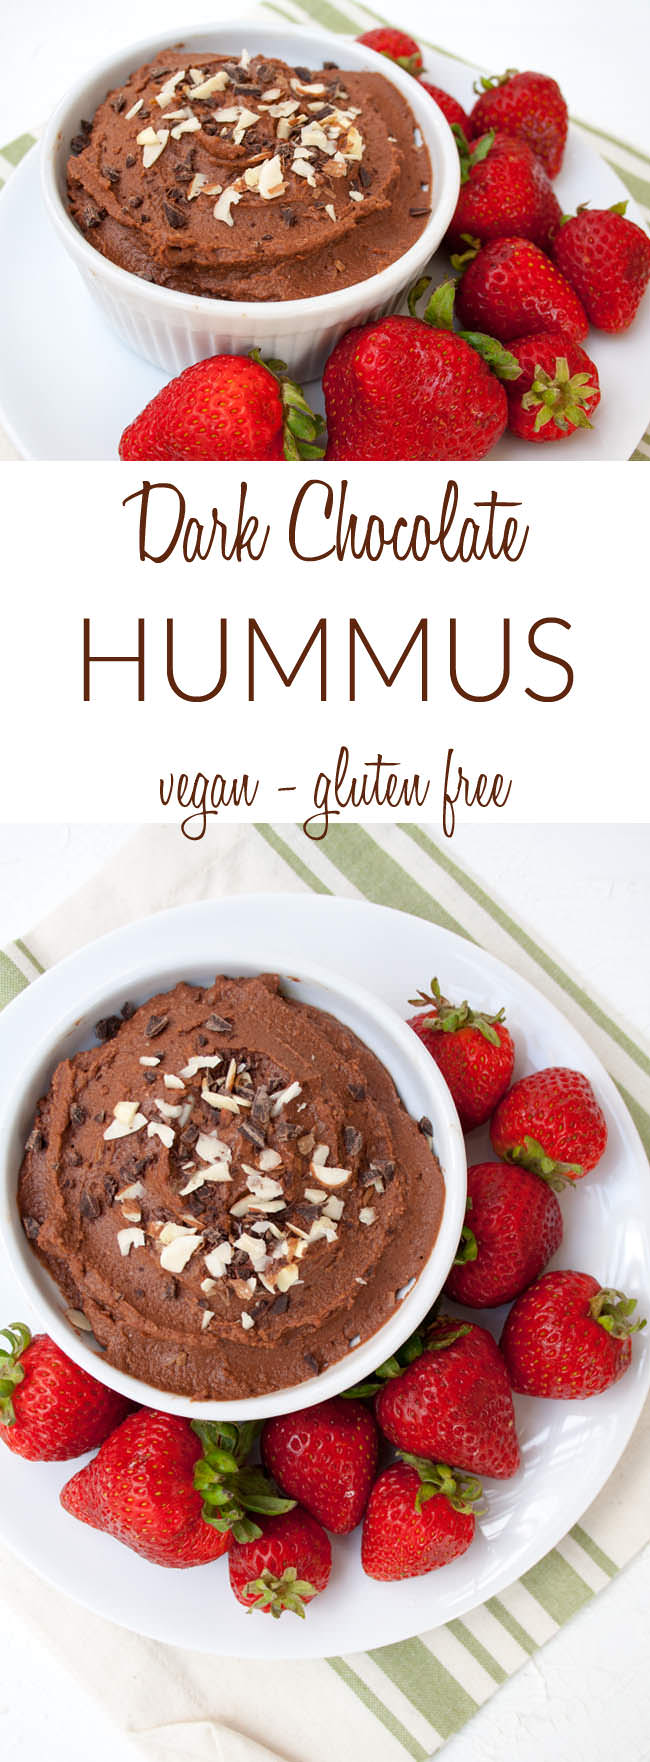 Dark Chocolate Hummus collage photo.